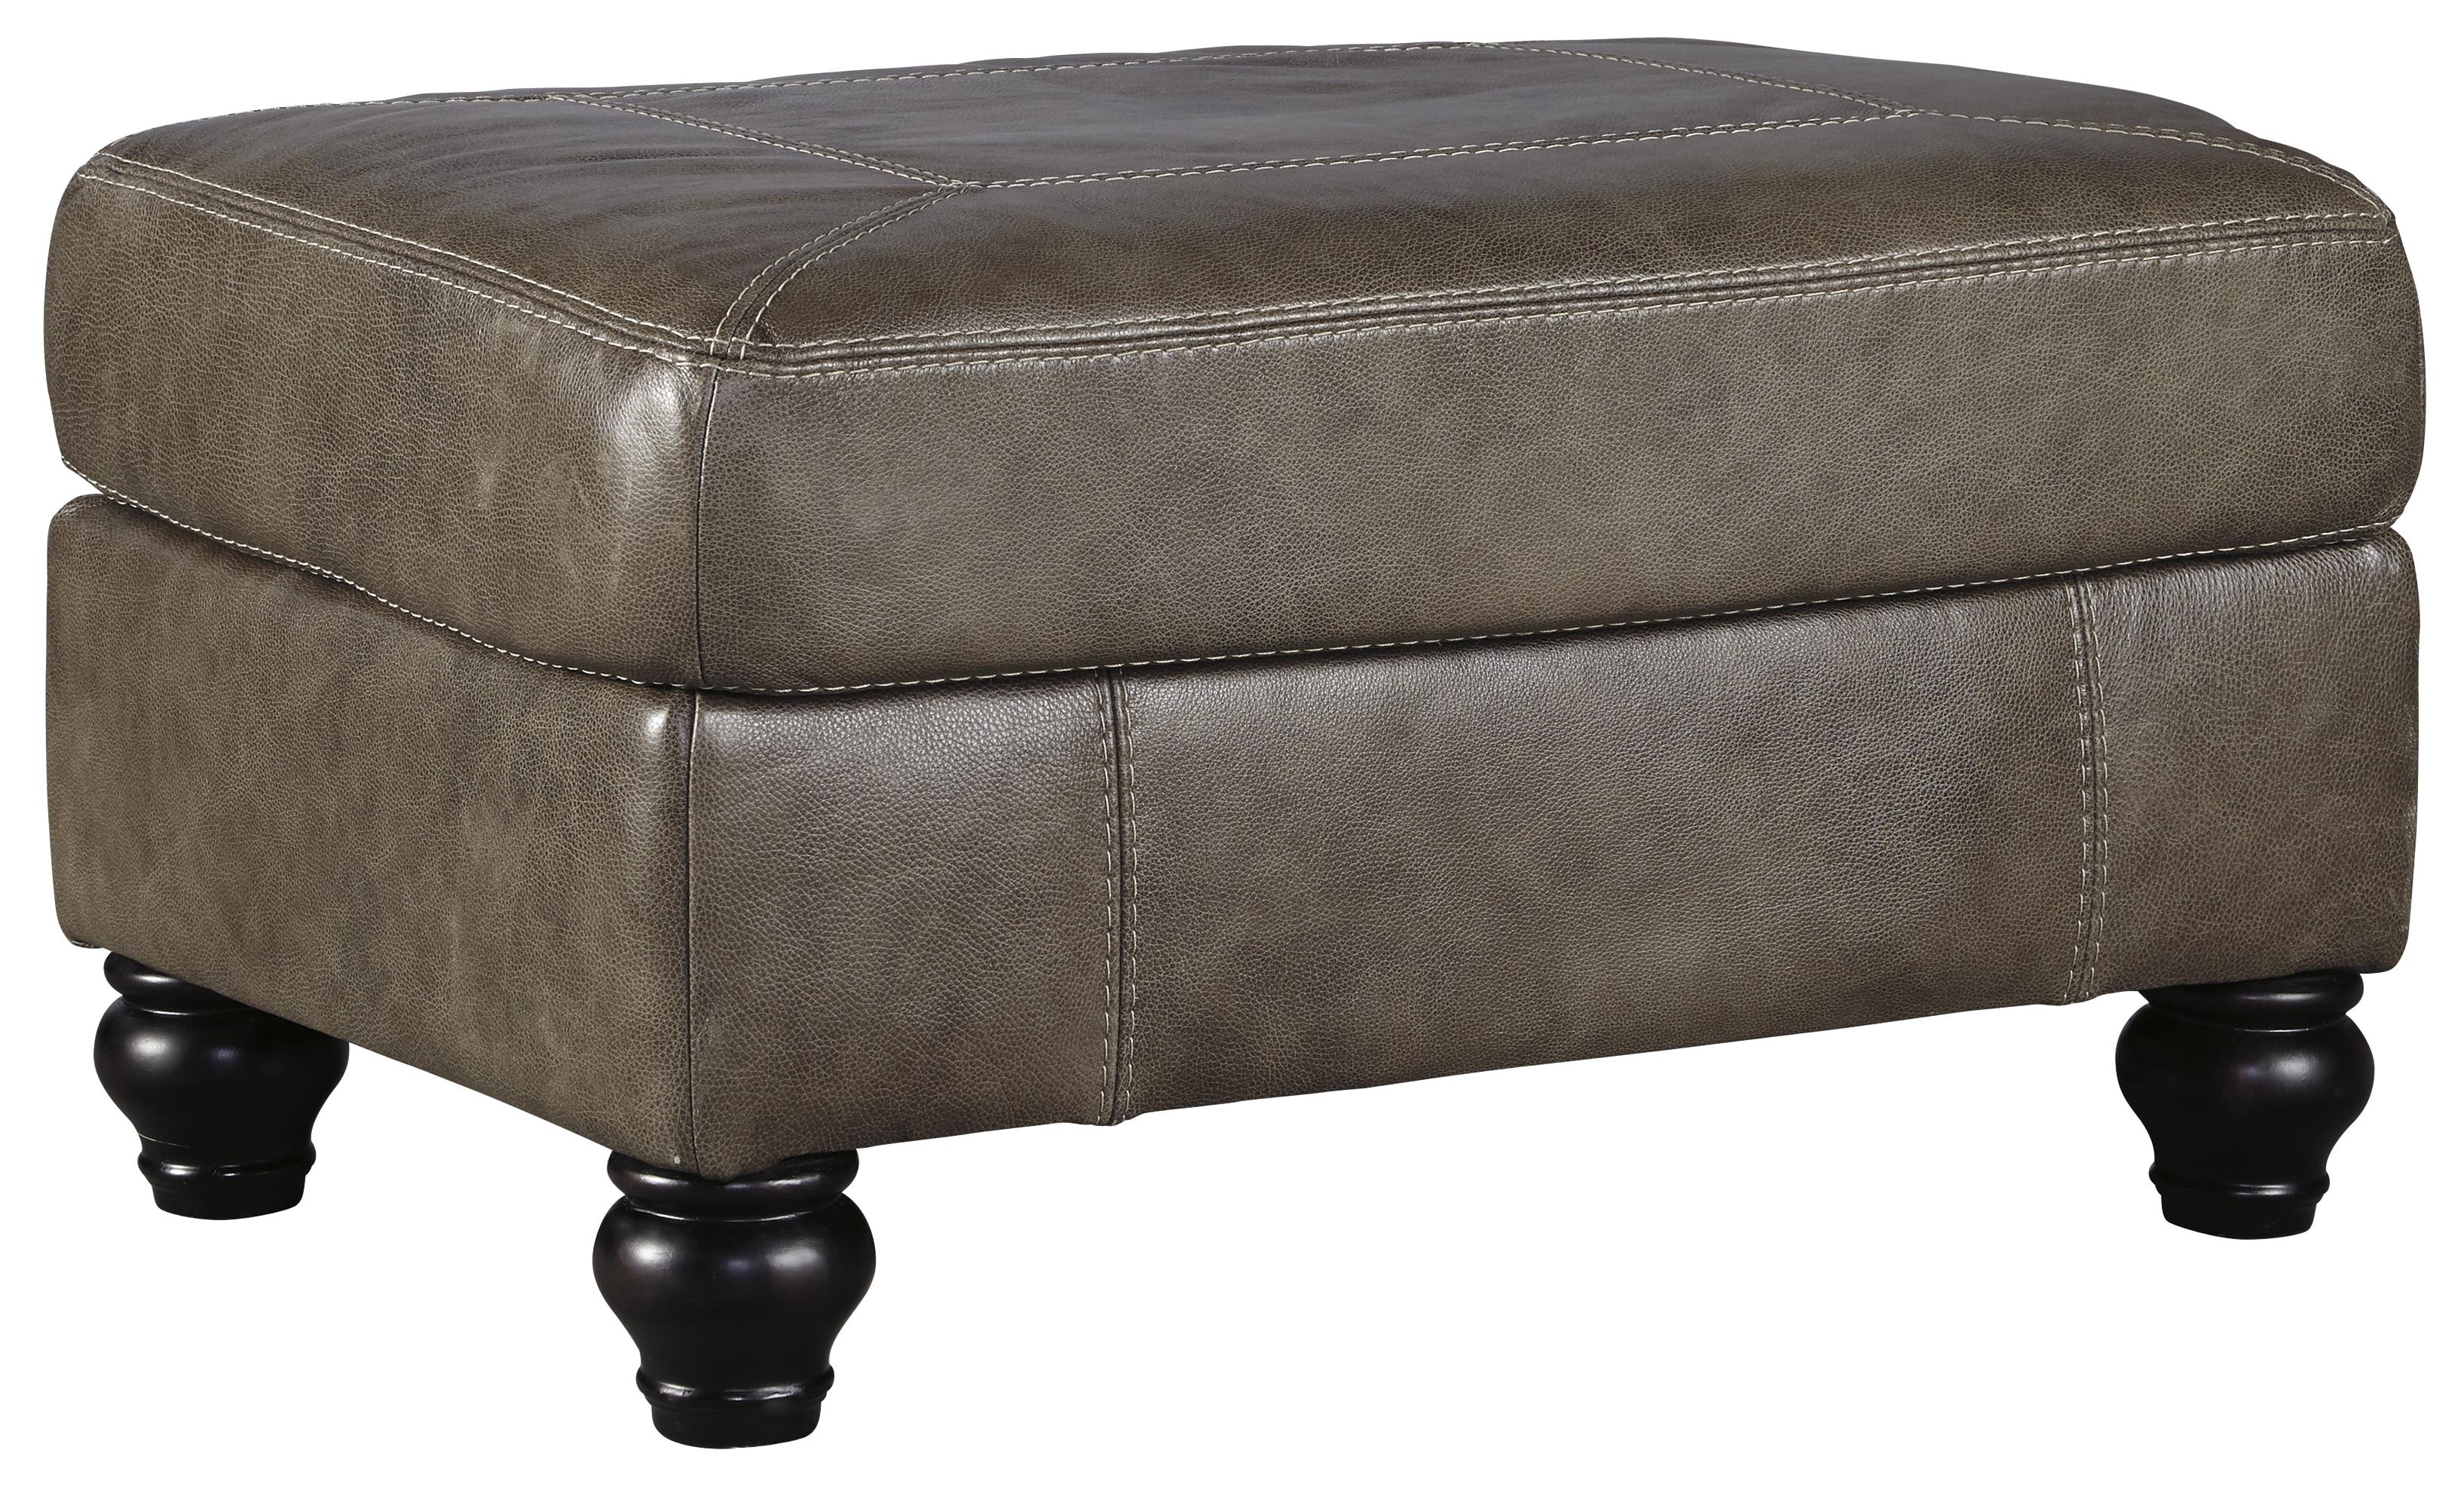 Benchcraft Kannerdy Ottoman - Item Number: 8040214